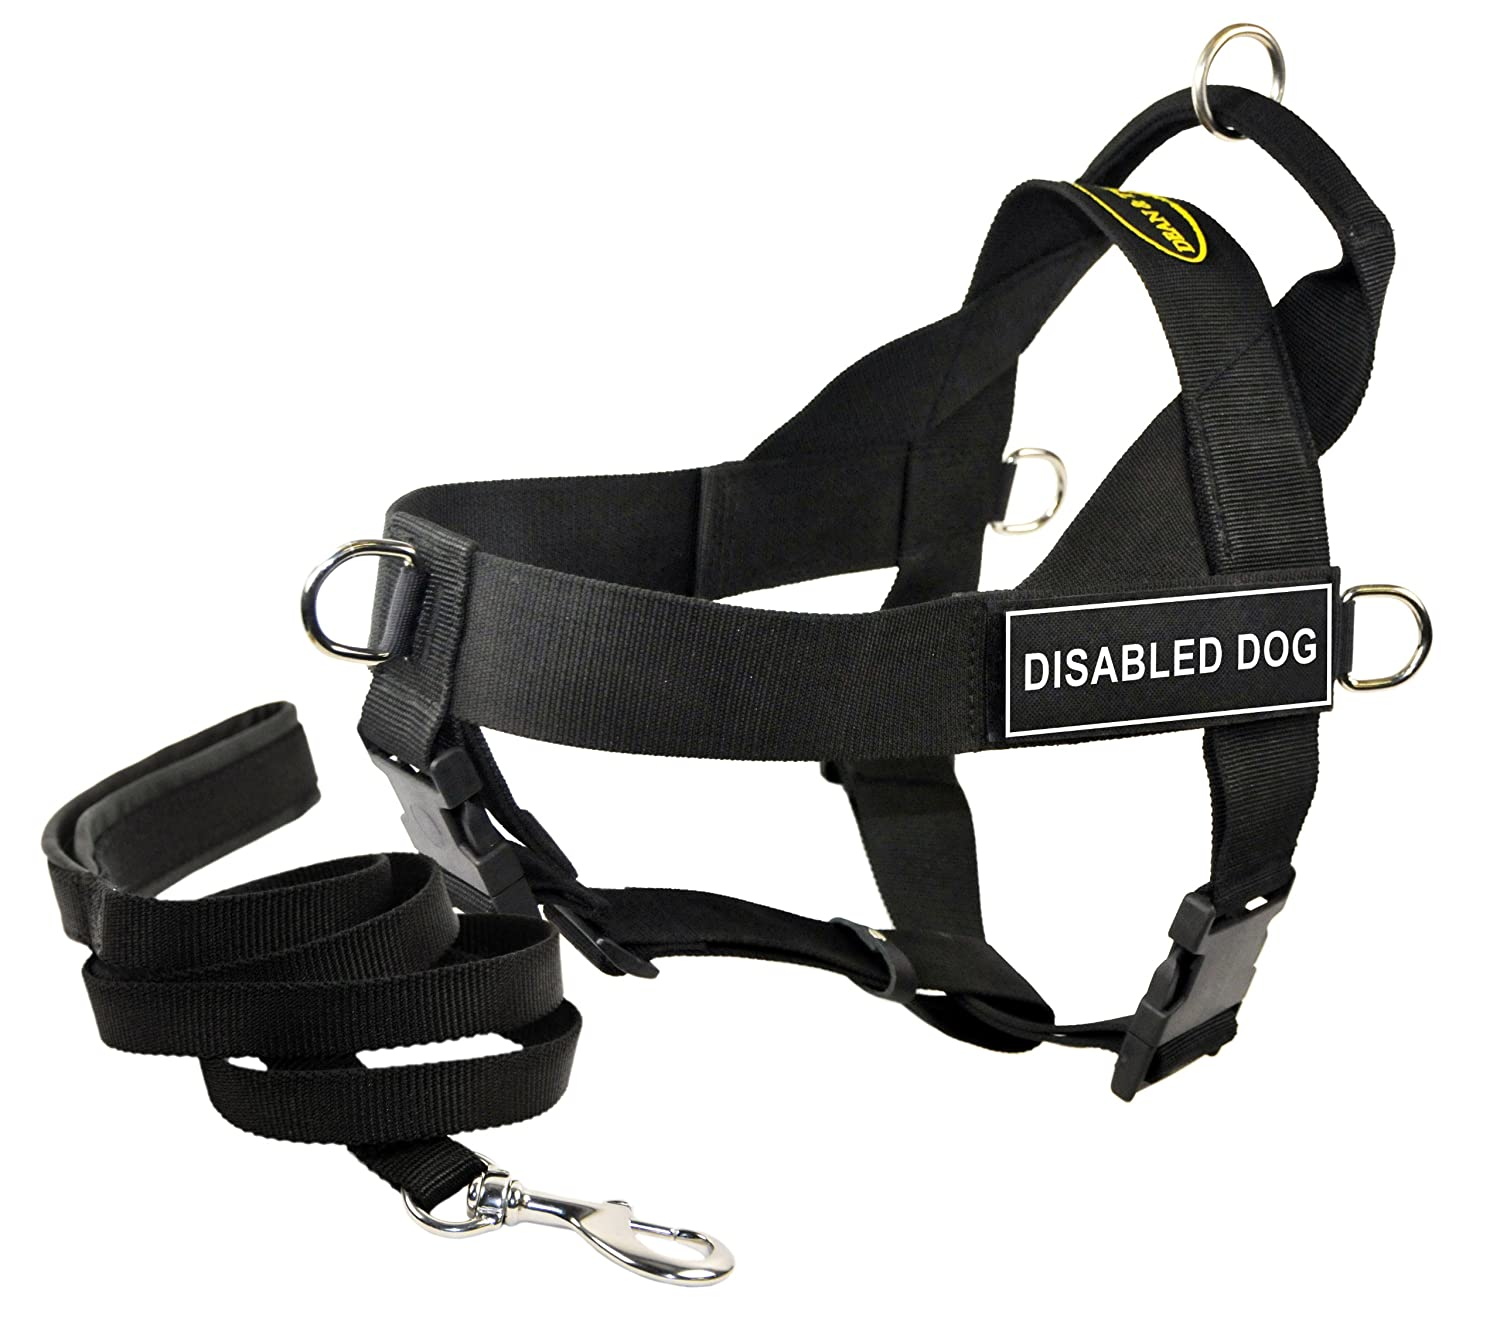 Dean & Tyler DT Universale disabili Dog Harness, X-Large, con 1,8 m Padded Puppy guinzaglio.